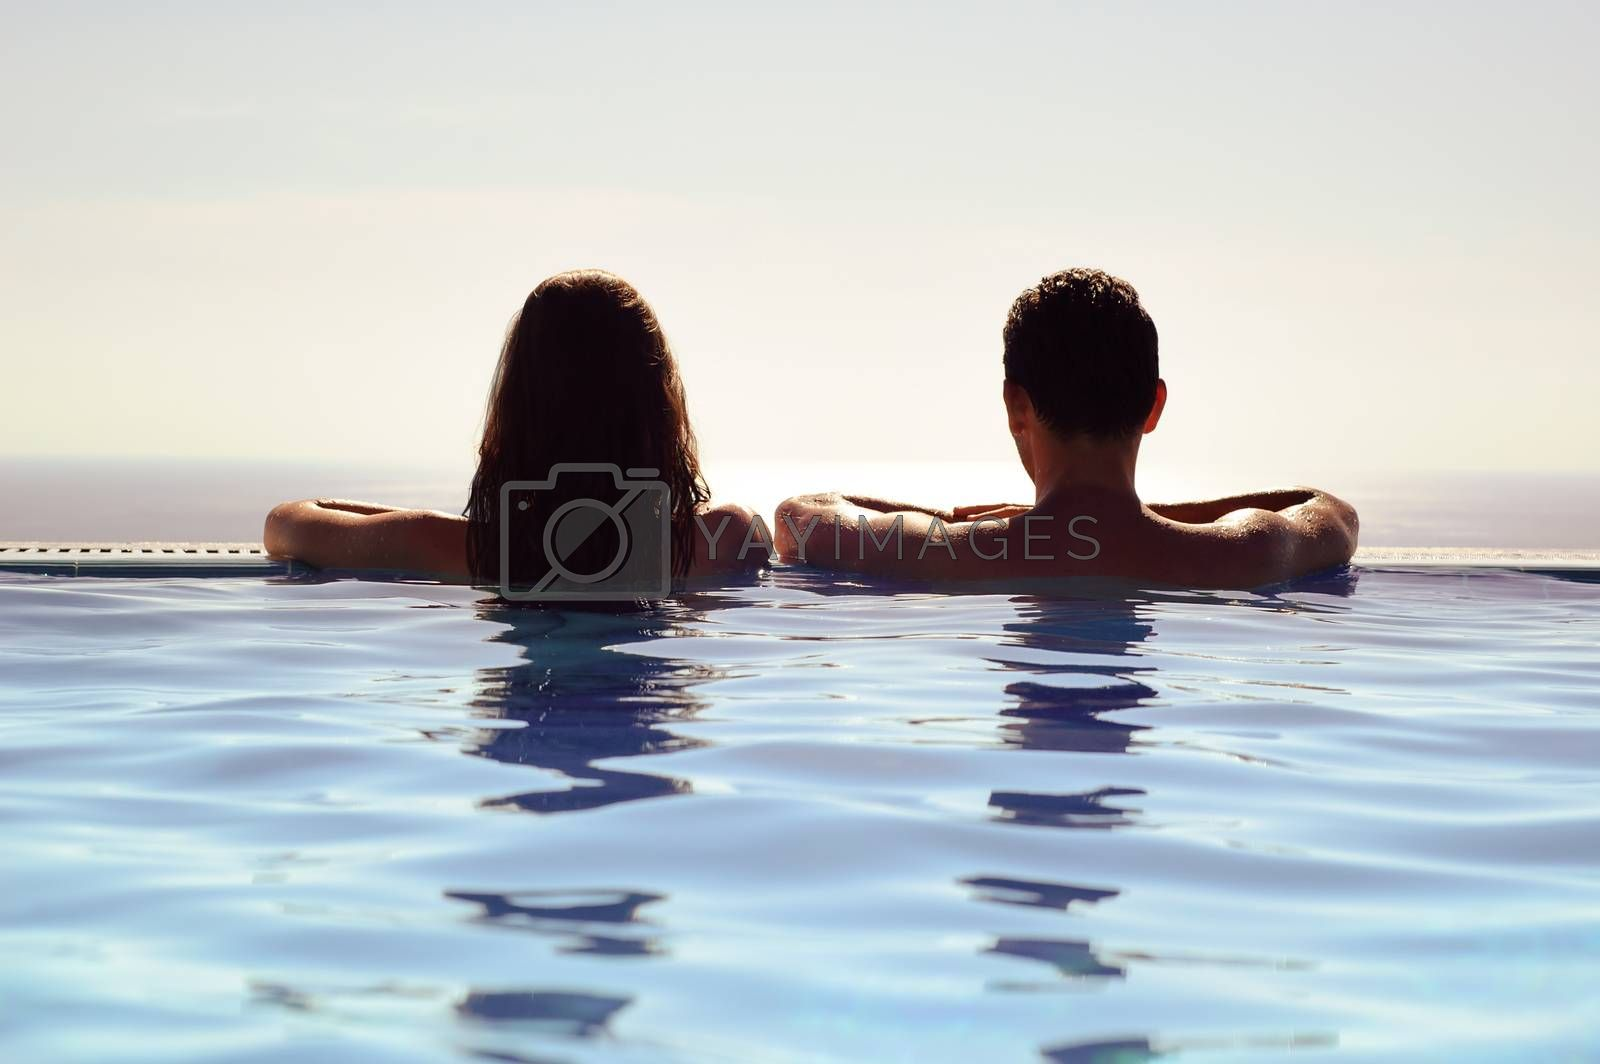 Young Couple Relaxing Together in an Infinity Swimming Pool and Enjoying the View of Horizon and Sea. Rear View of Honeymoon Couple at Luxury Resort. Travel and Summer Vacation.